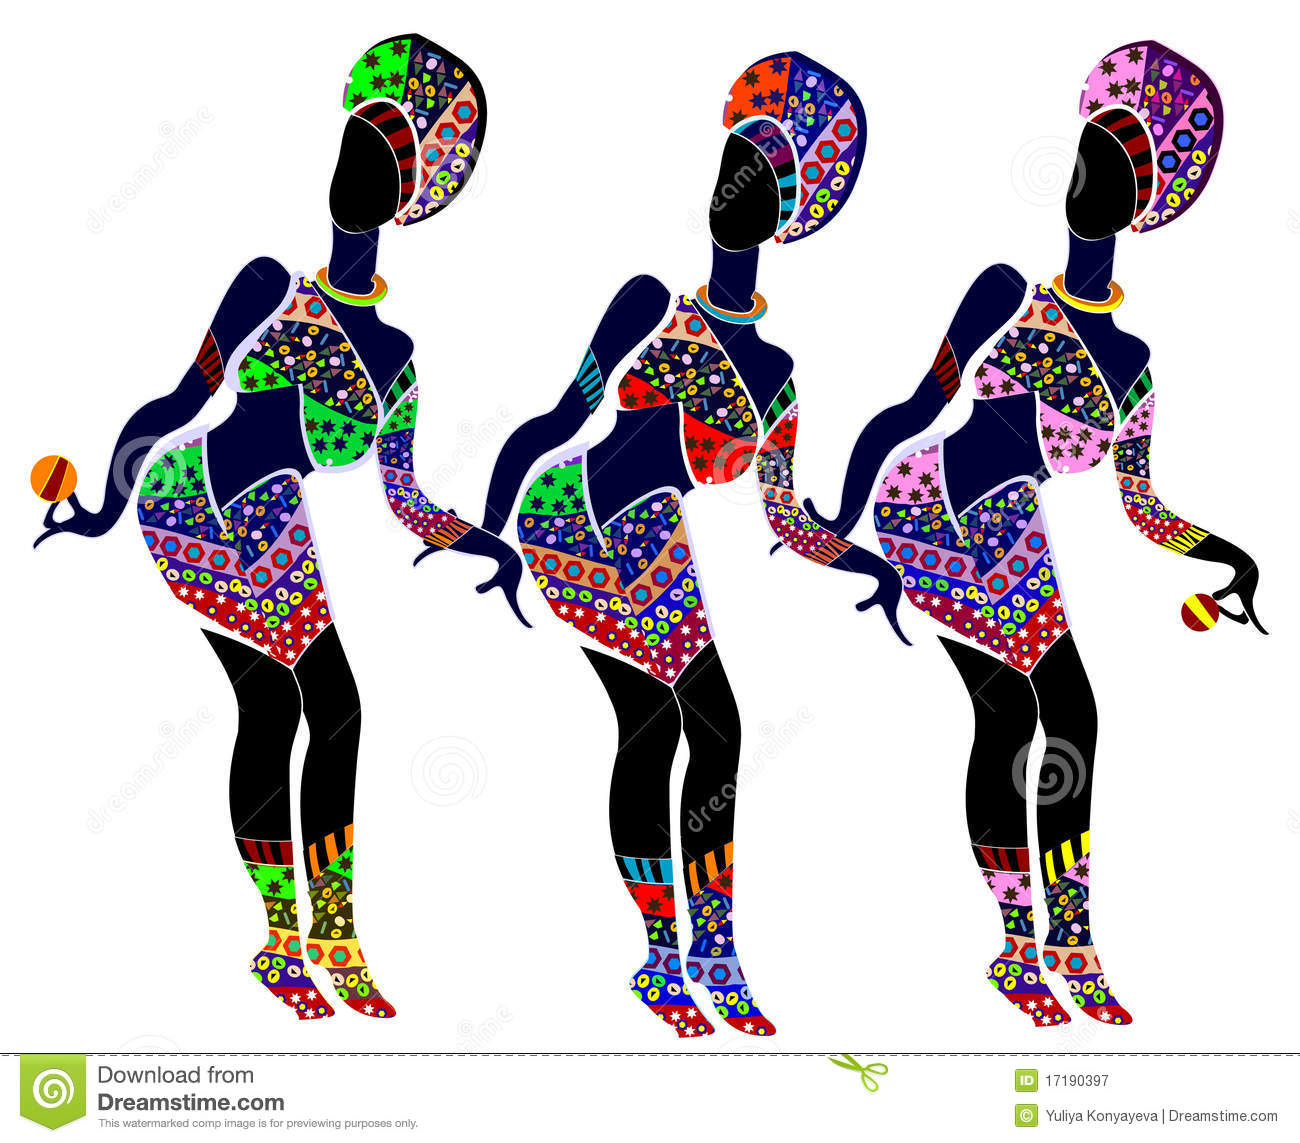 ... patterned women dance their interesting dance on a white background